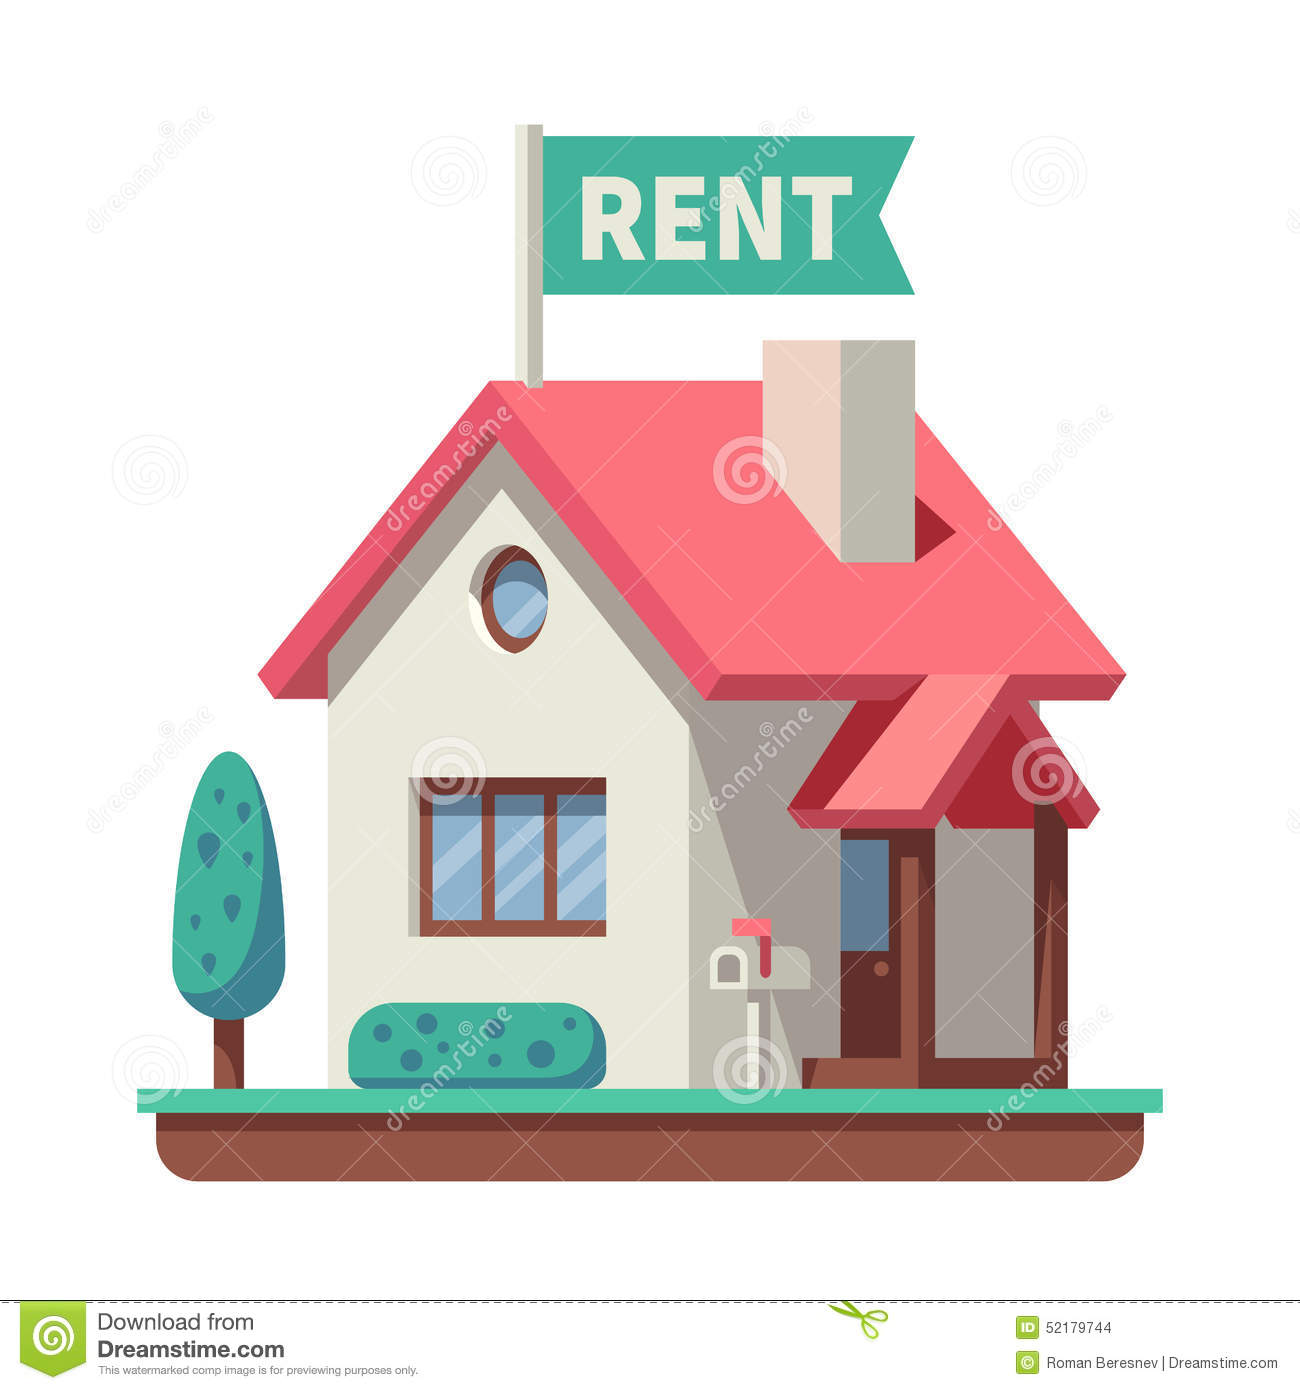 Apartment House For Rent: House For Rent Stock Vector. Illustration Of Graphic